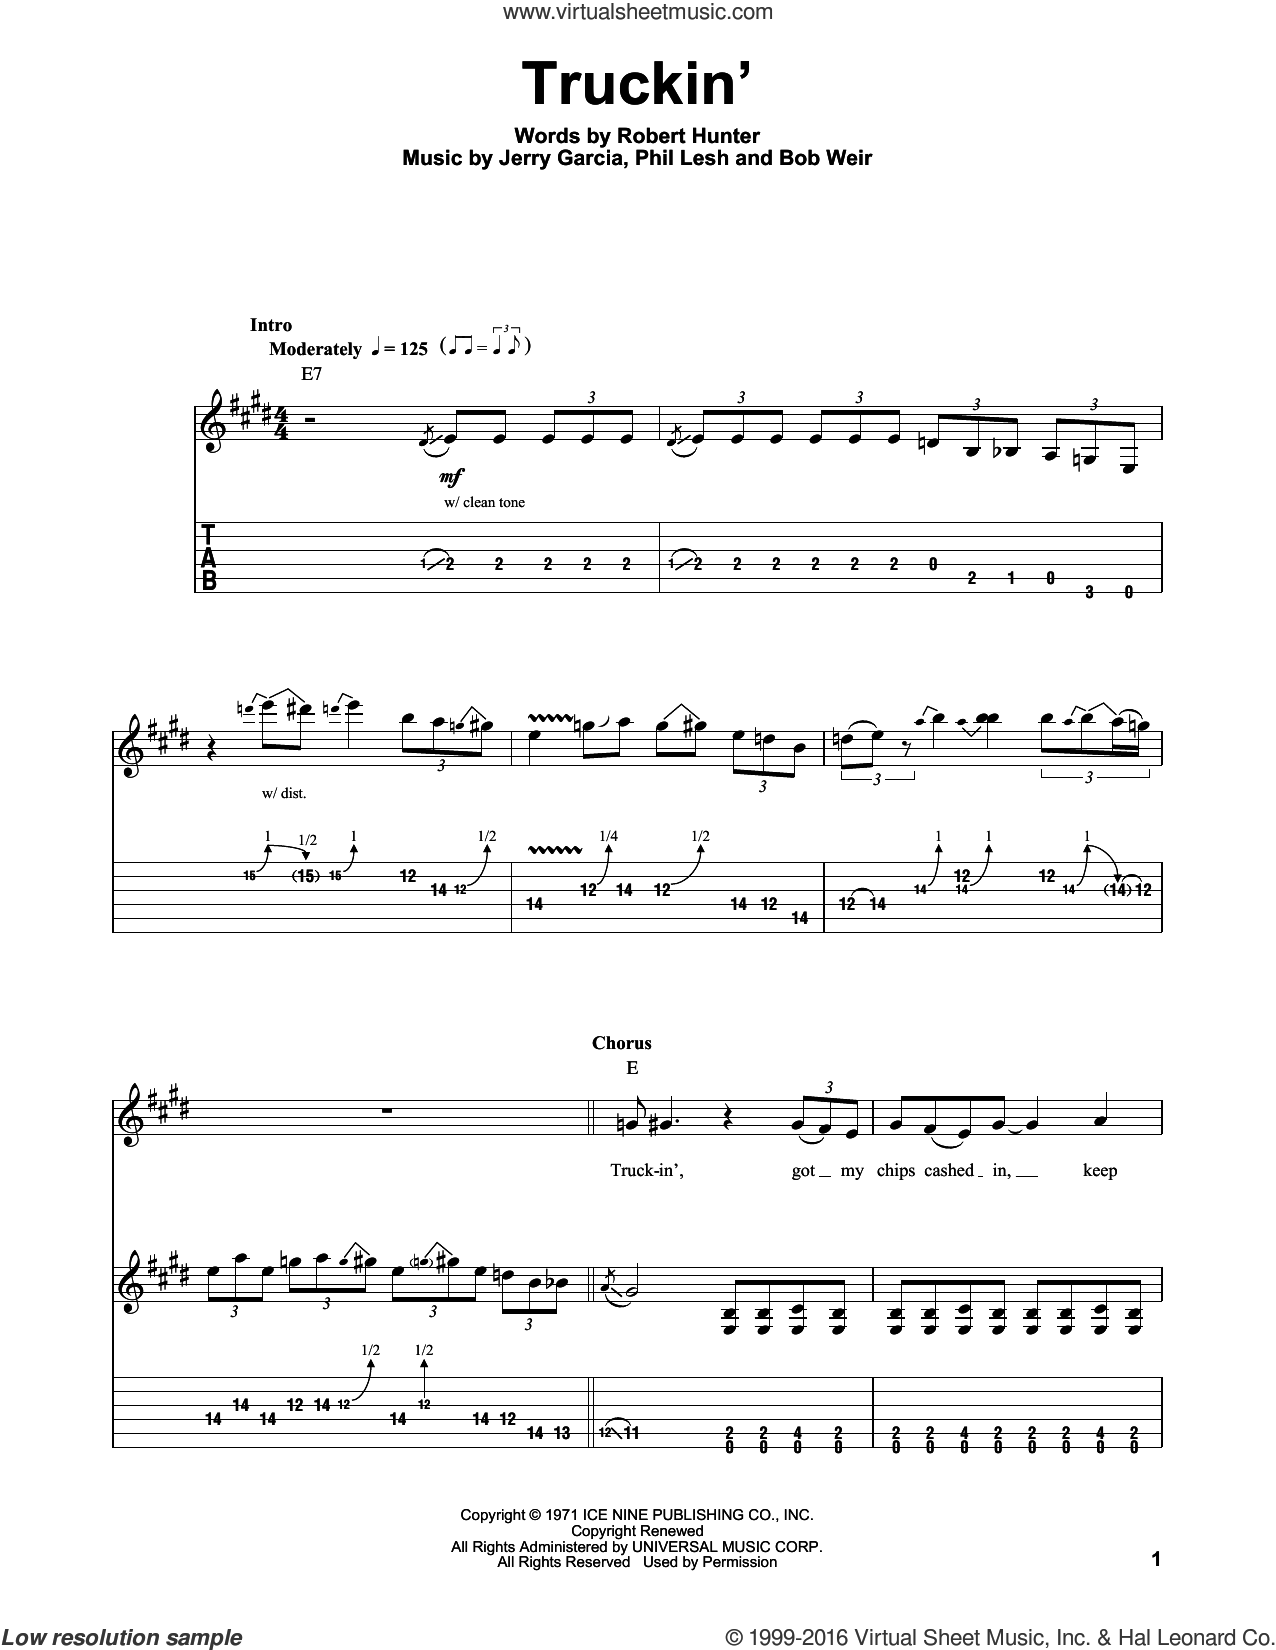 Truckin' sheet music for guitar (tablature, play-along) by Grateful Dead, Bob Weir, Jerry Garcia, Phil Lesh and Robert Hunter, intermediate skill level